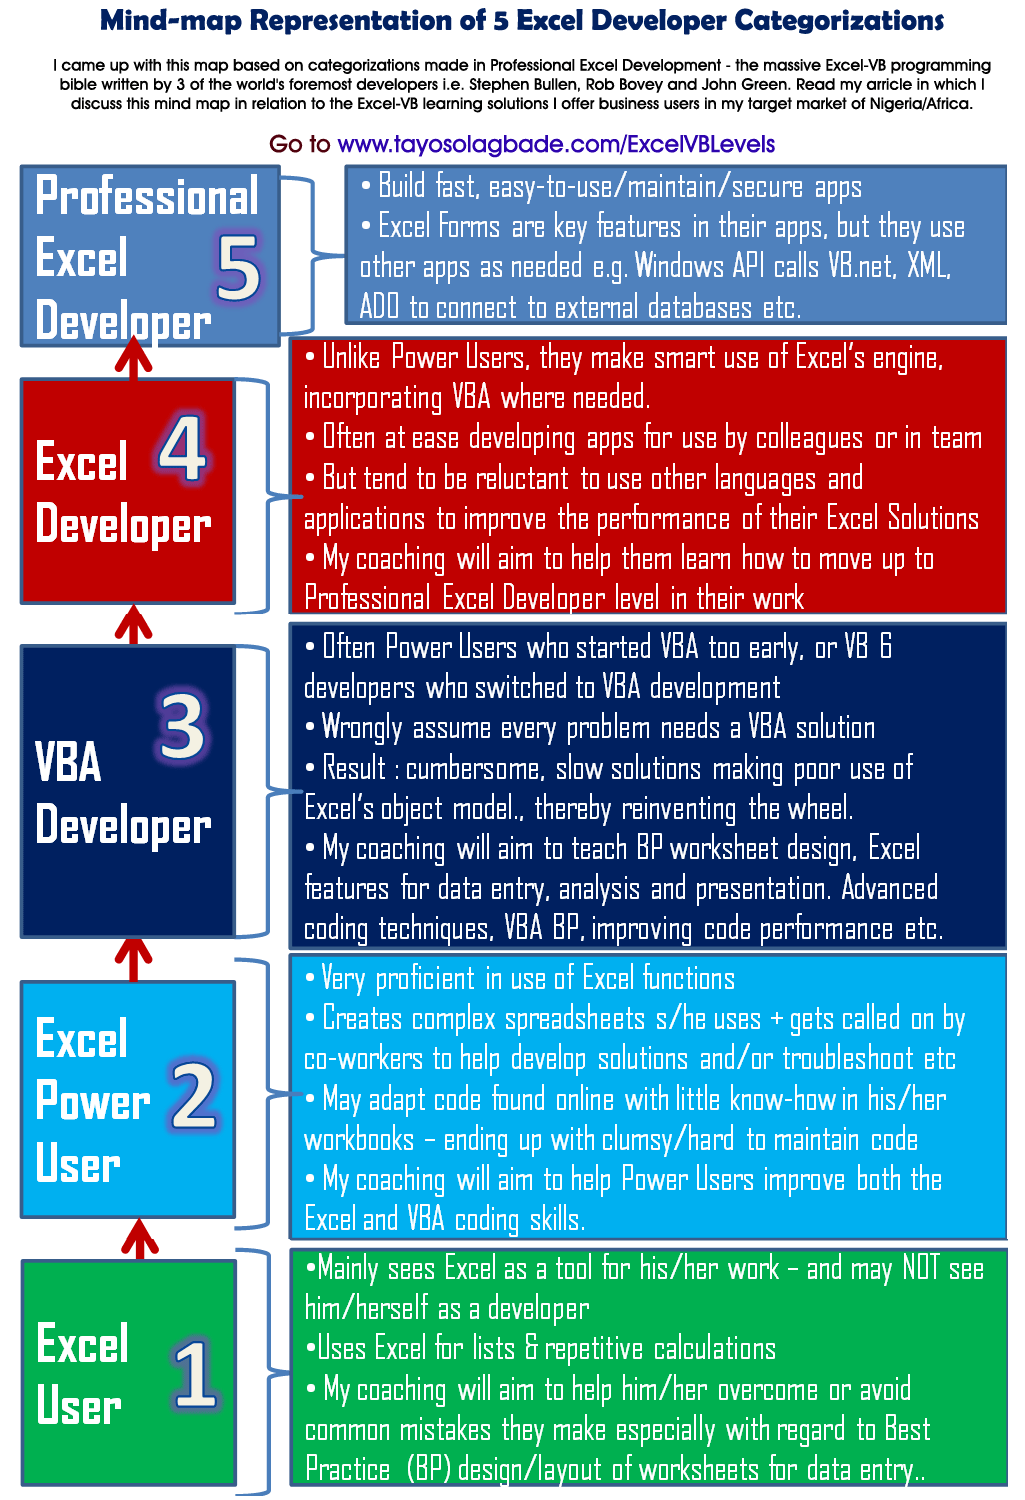 ExcelVB-Levels - A mind-map showing 5 levels of Excel-VB Solutions Development Competence I offer support to achieve. I came up with this diagram based on categorizations made in Professional Excel Development - the massive Excel-VB programming bible written by 3 of the world's foremost developers i.e. Stephen Bullen, Rob Bovey and John Green.